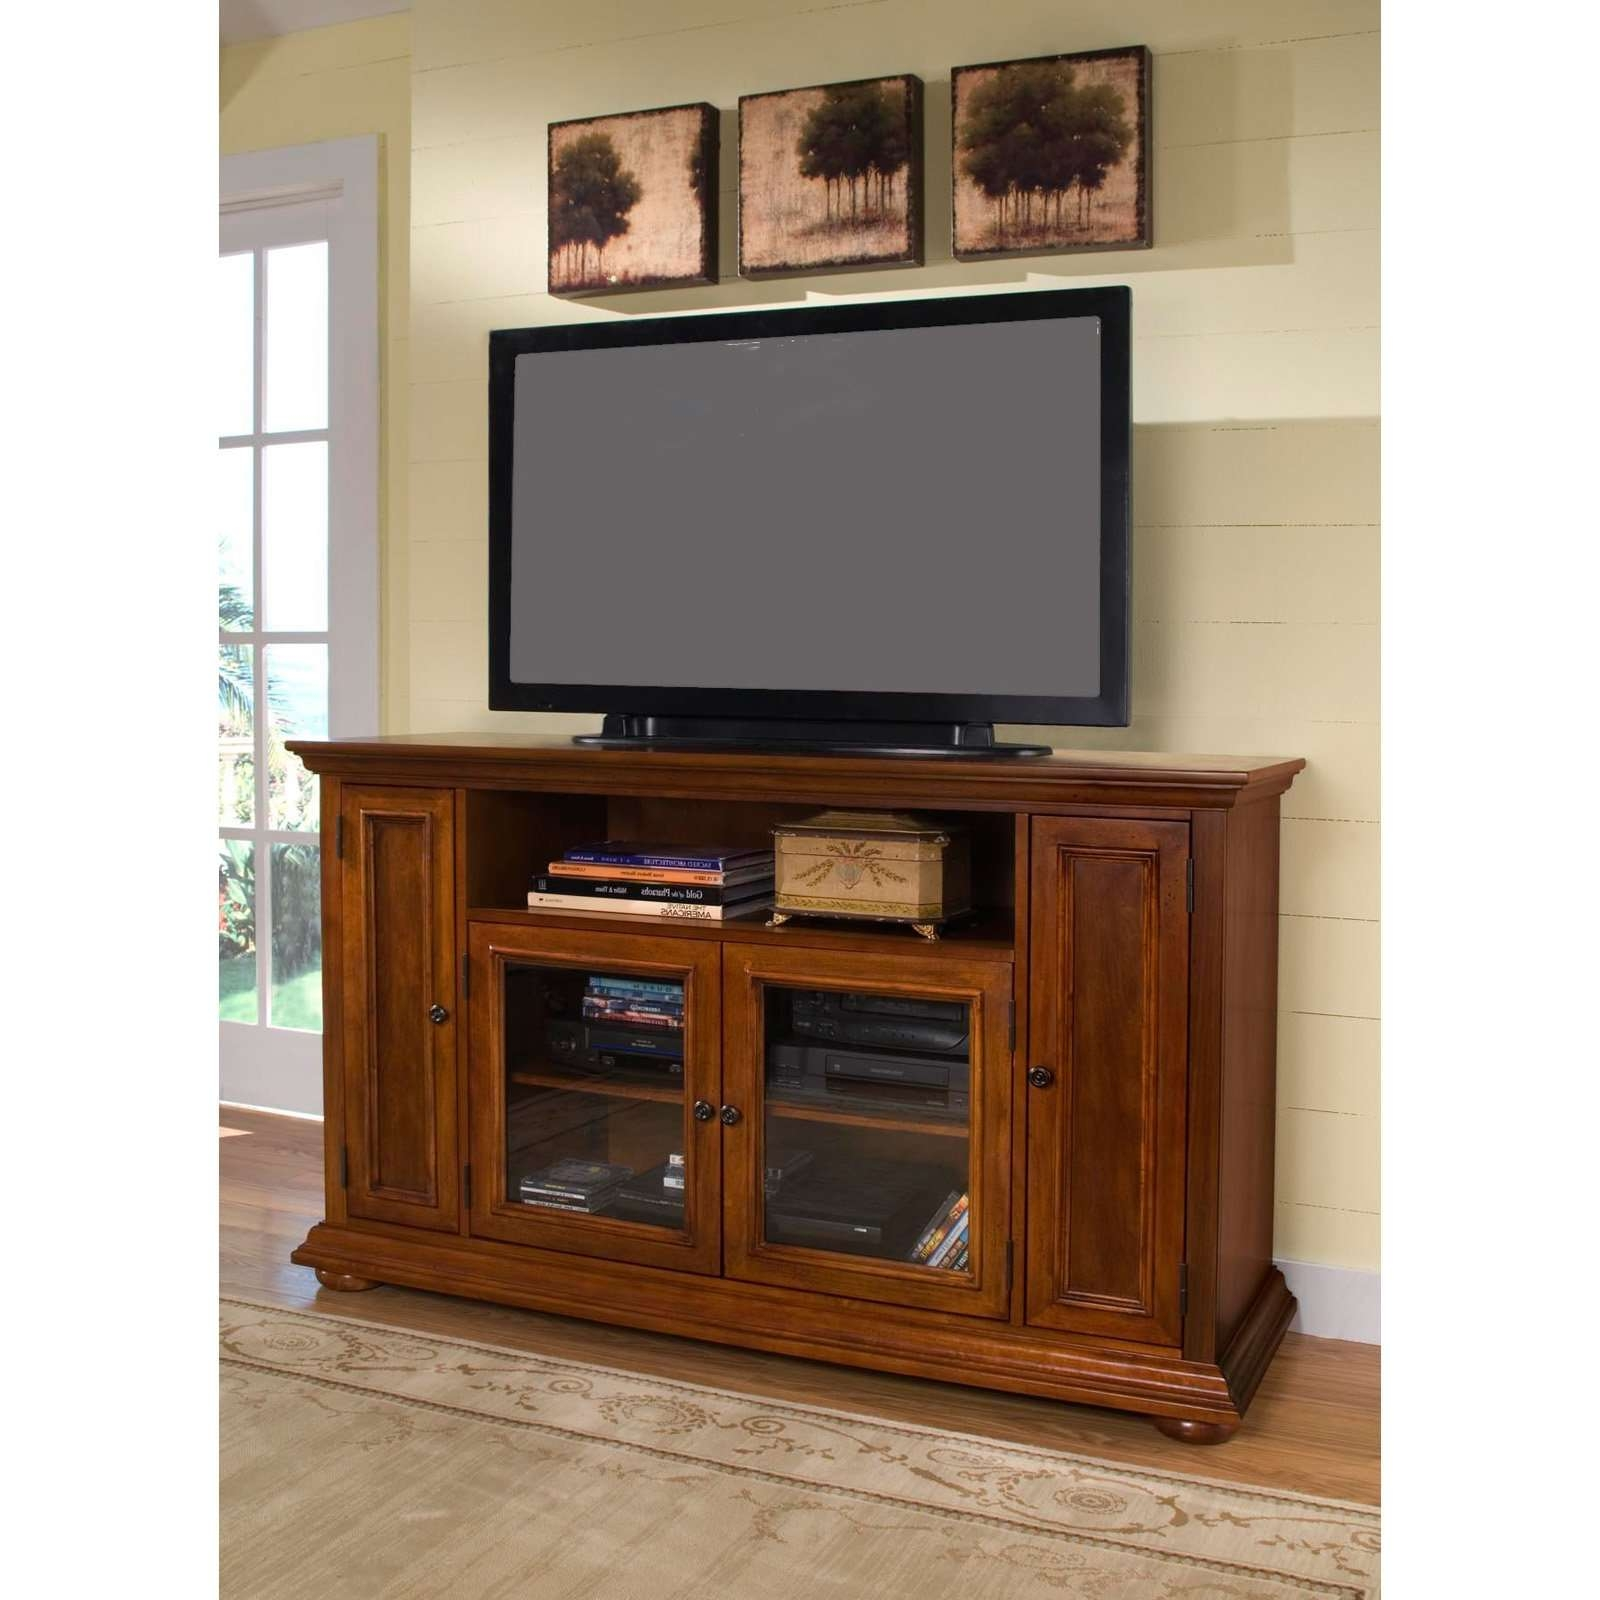 Rectangle Black Flat Screen Tv Over Brown Wooden Cabinet With In Cream Tv Cabinets (View 11 of 20)